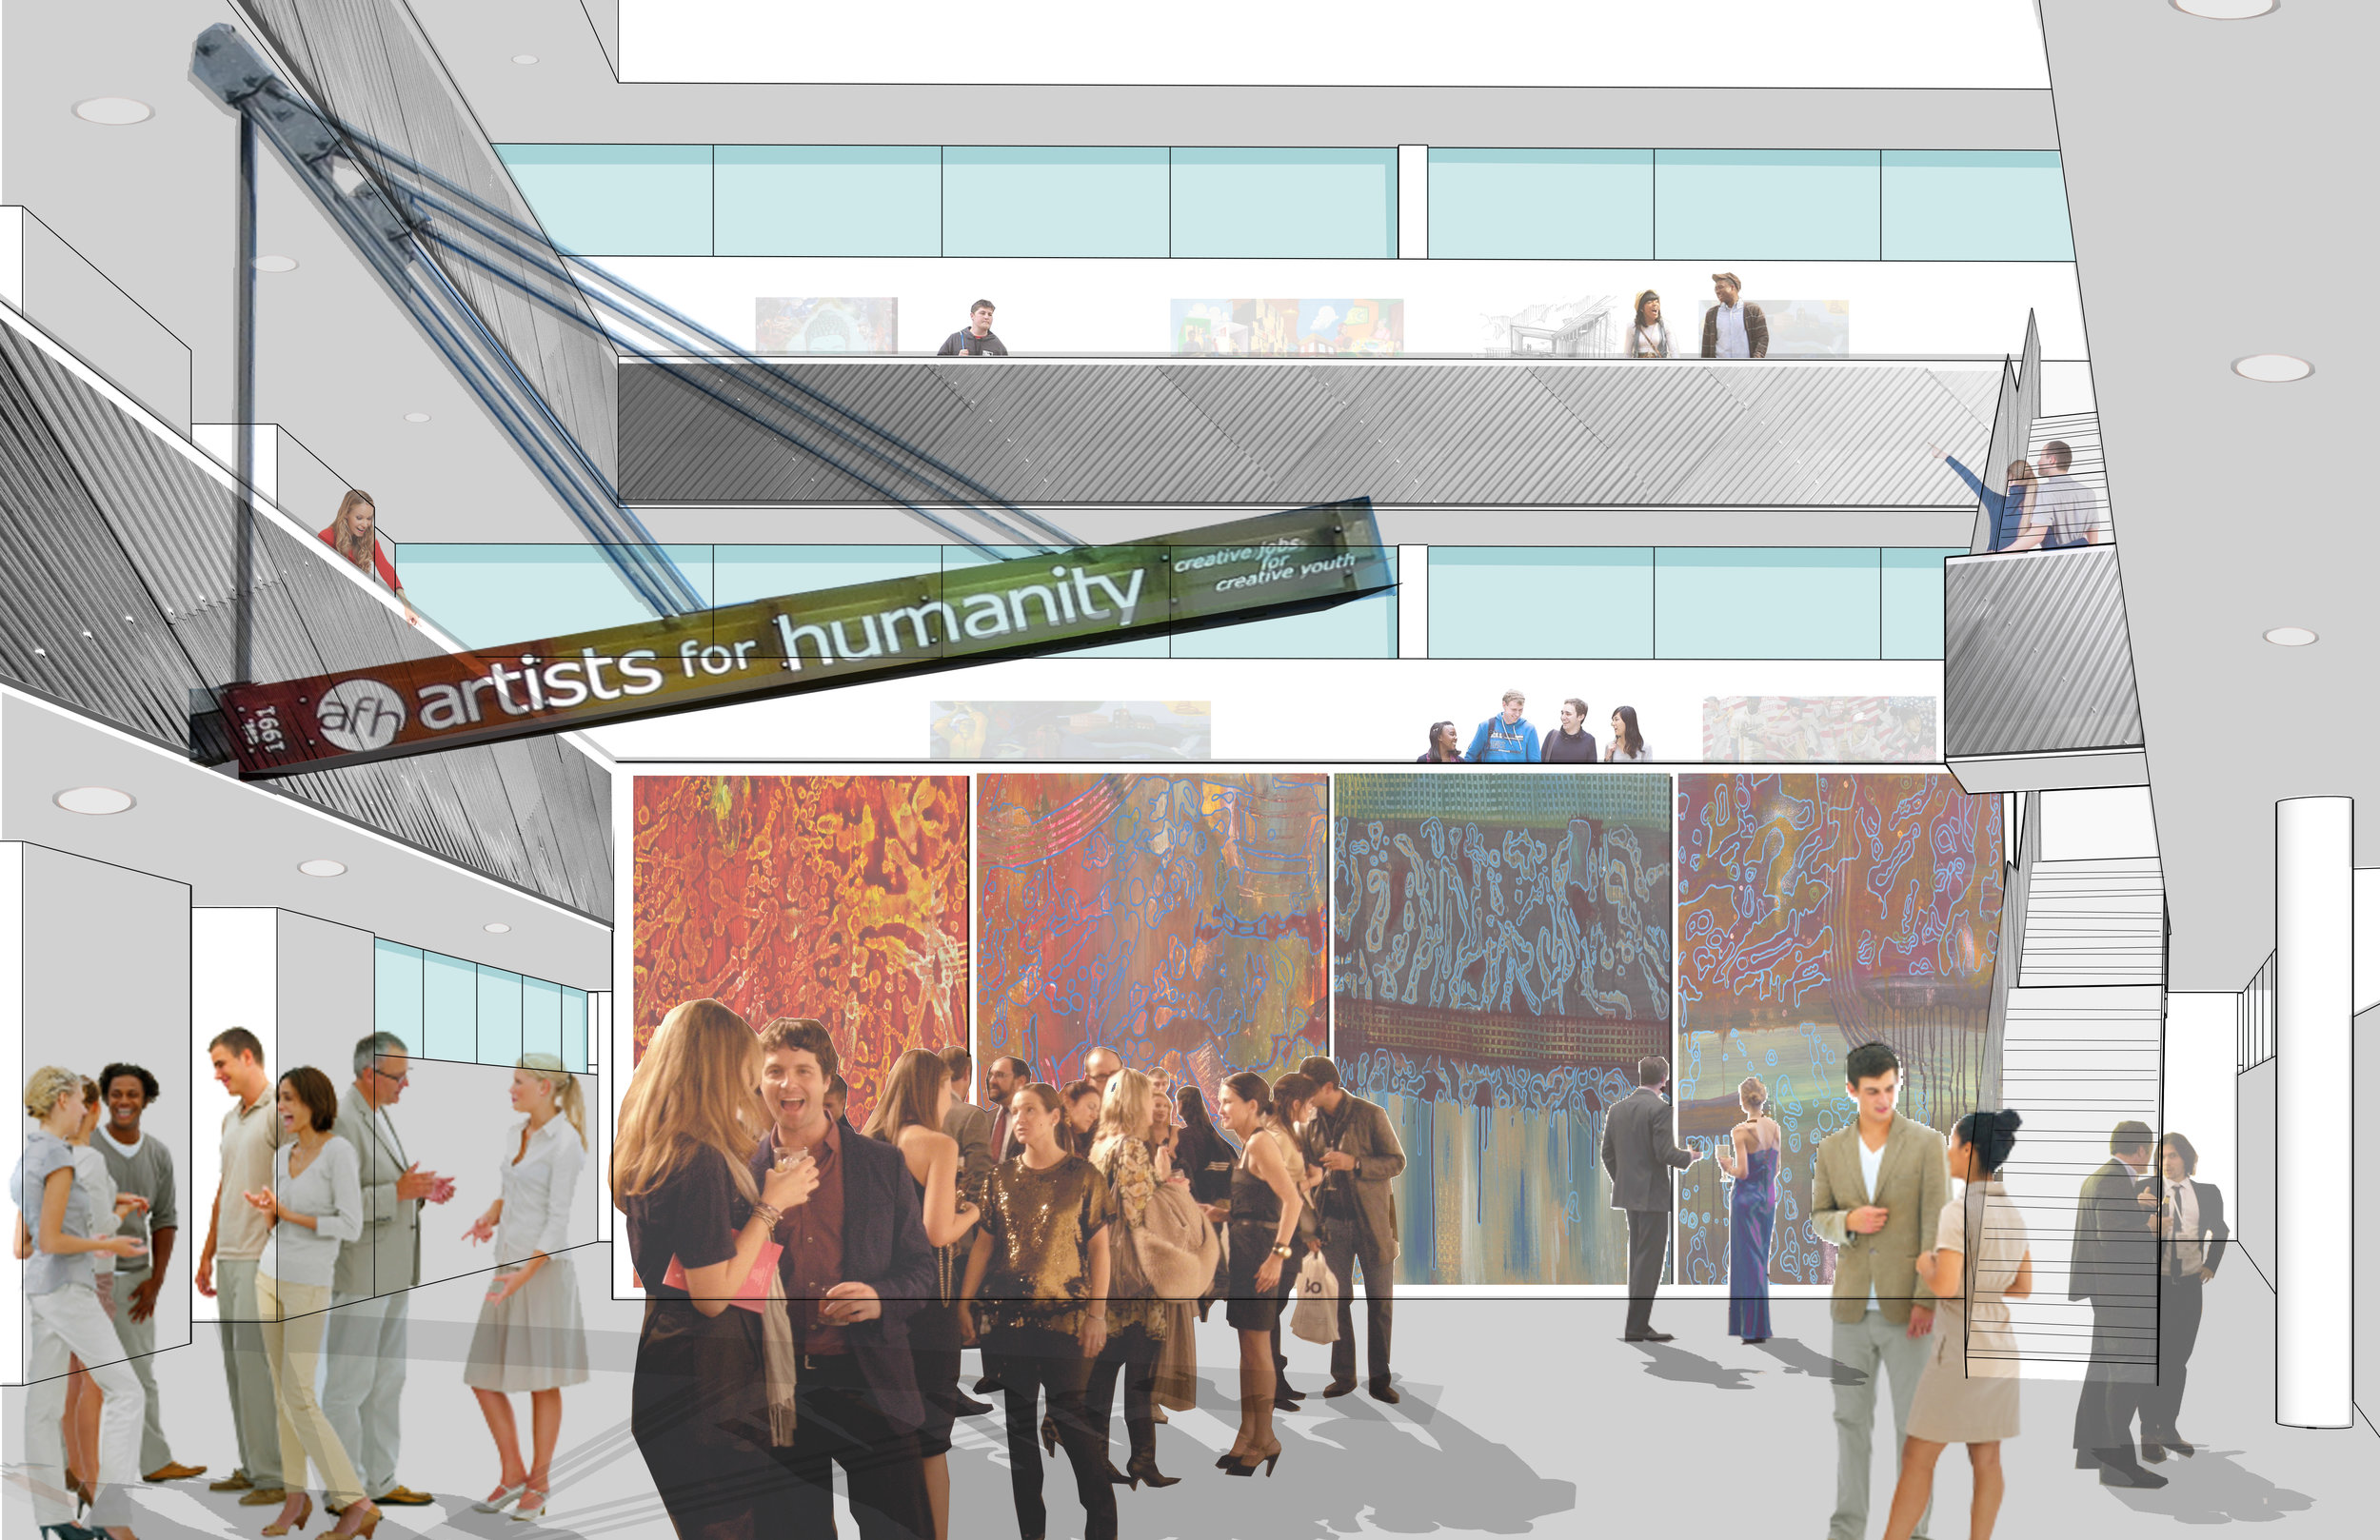 afh-1AB-perspective event space-RENDERED.jpg